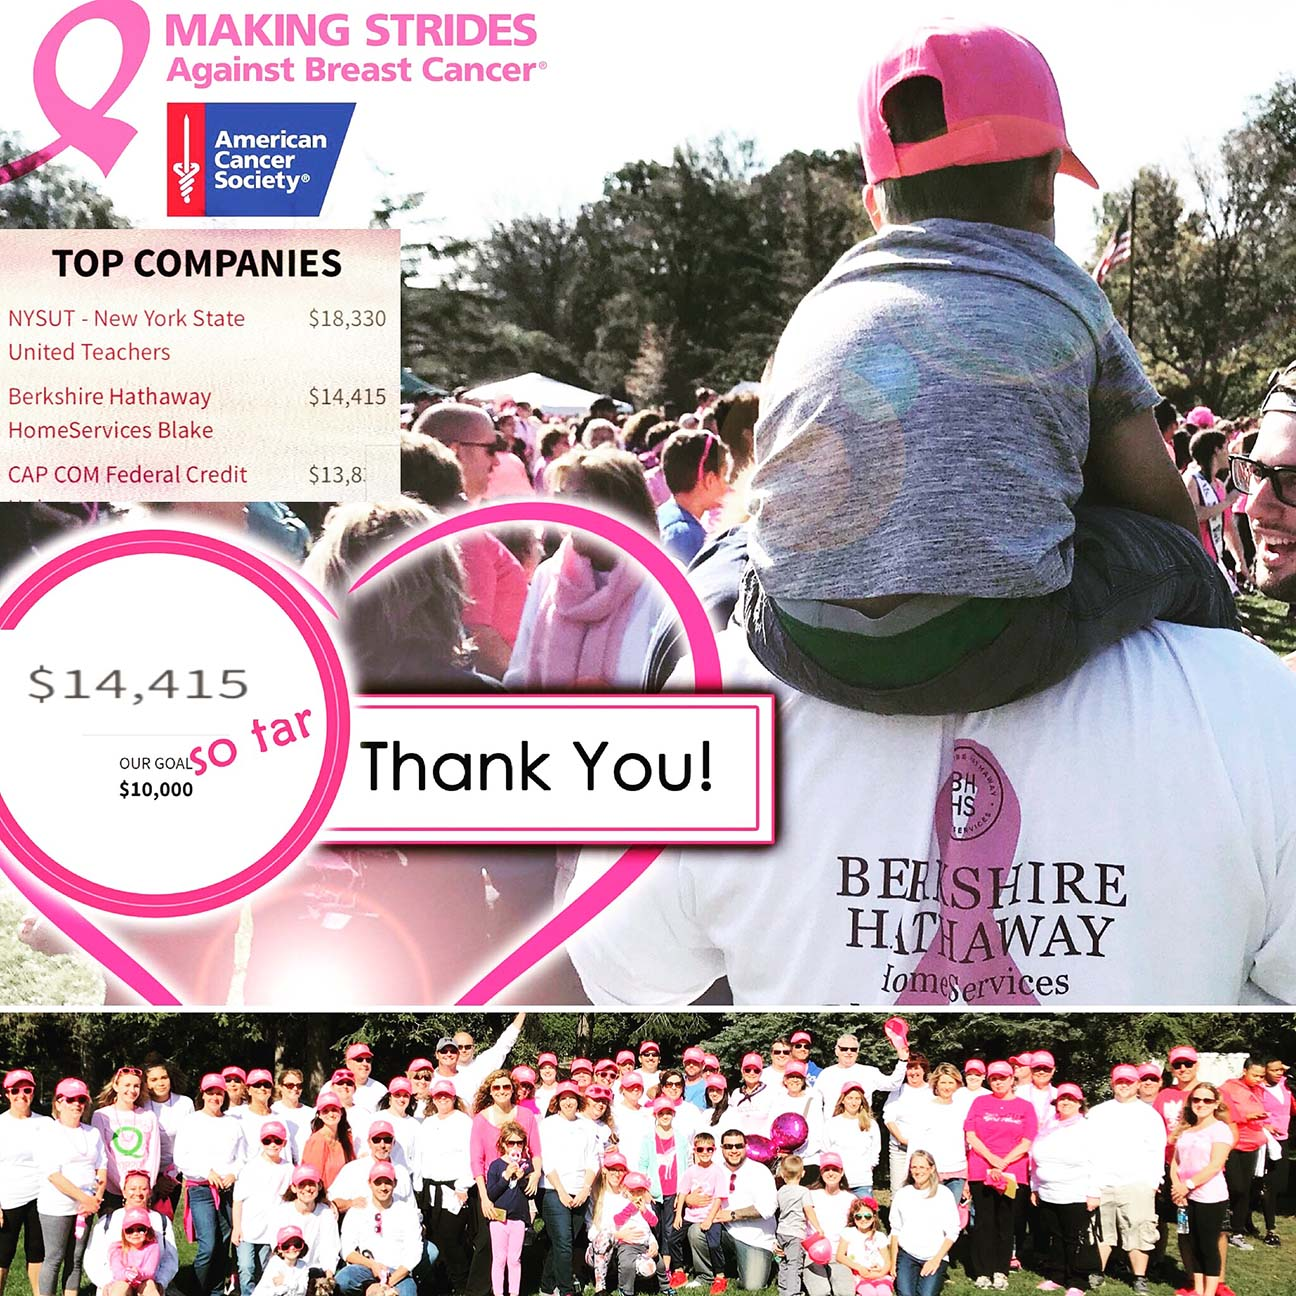 """Thank you to everyone who supported us on this initiative ... We sincerely appreciate it! Total raised for 2017 was $14,415.  Register to walk with """"Team Blake"""" on Sunday, October 21st at Washington Park here ."""